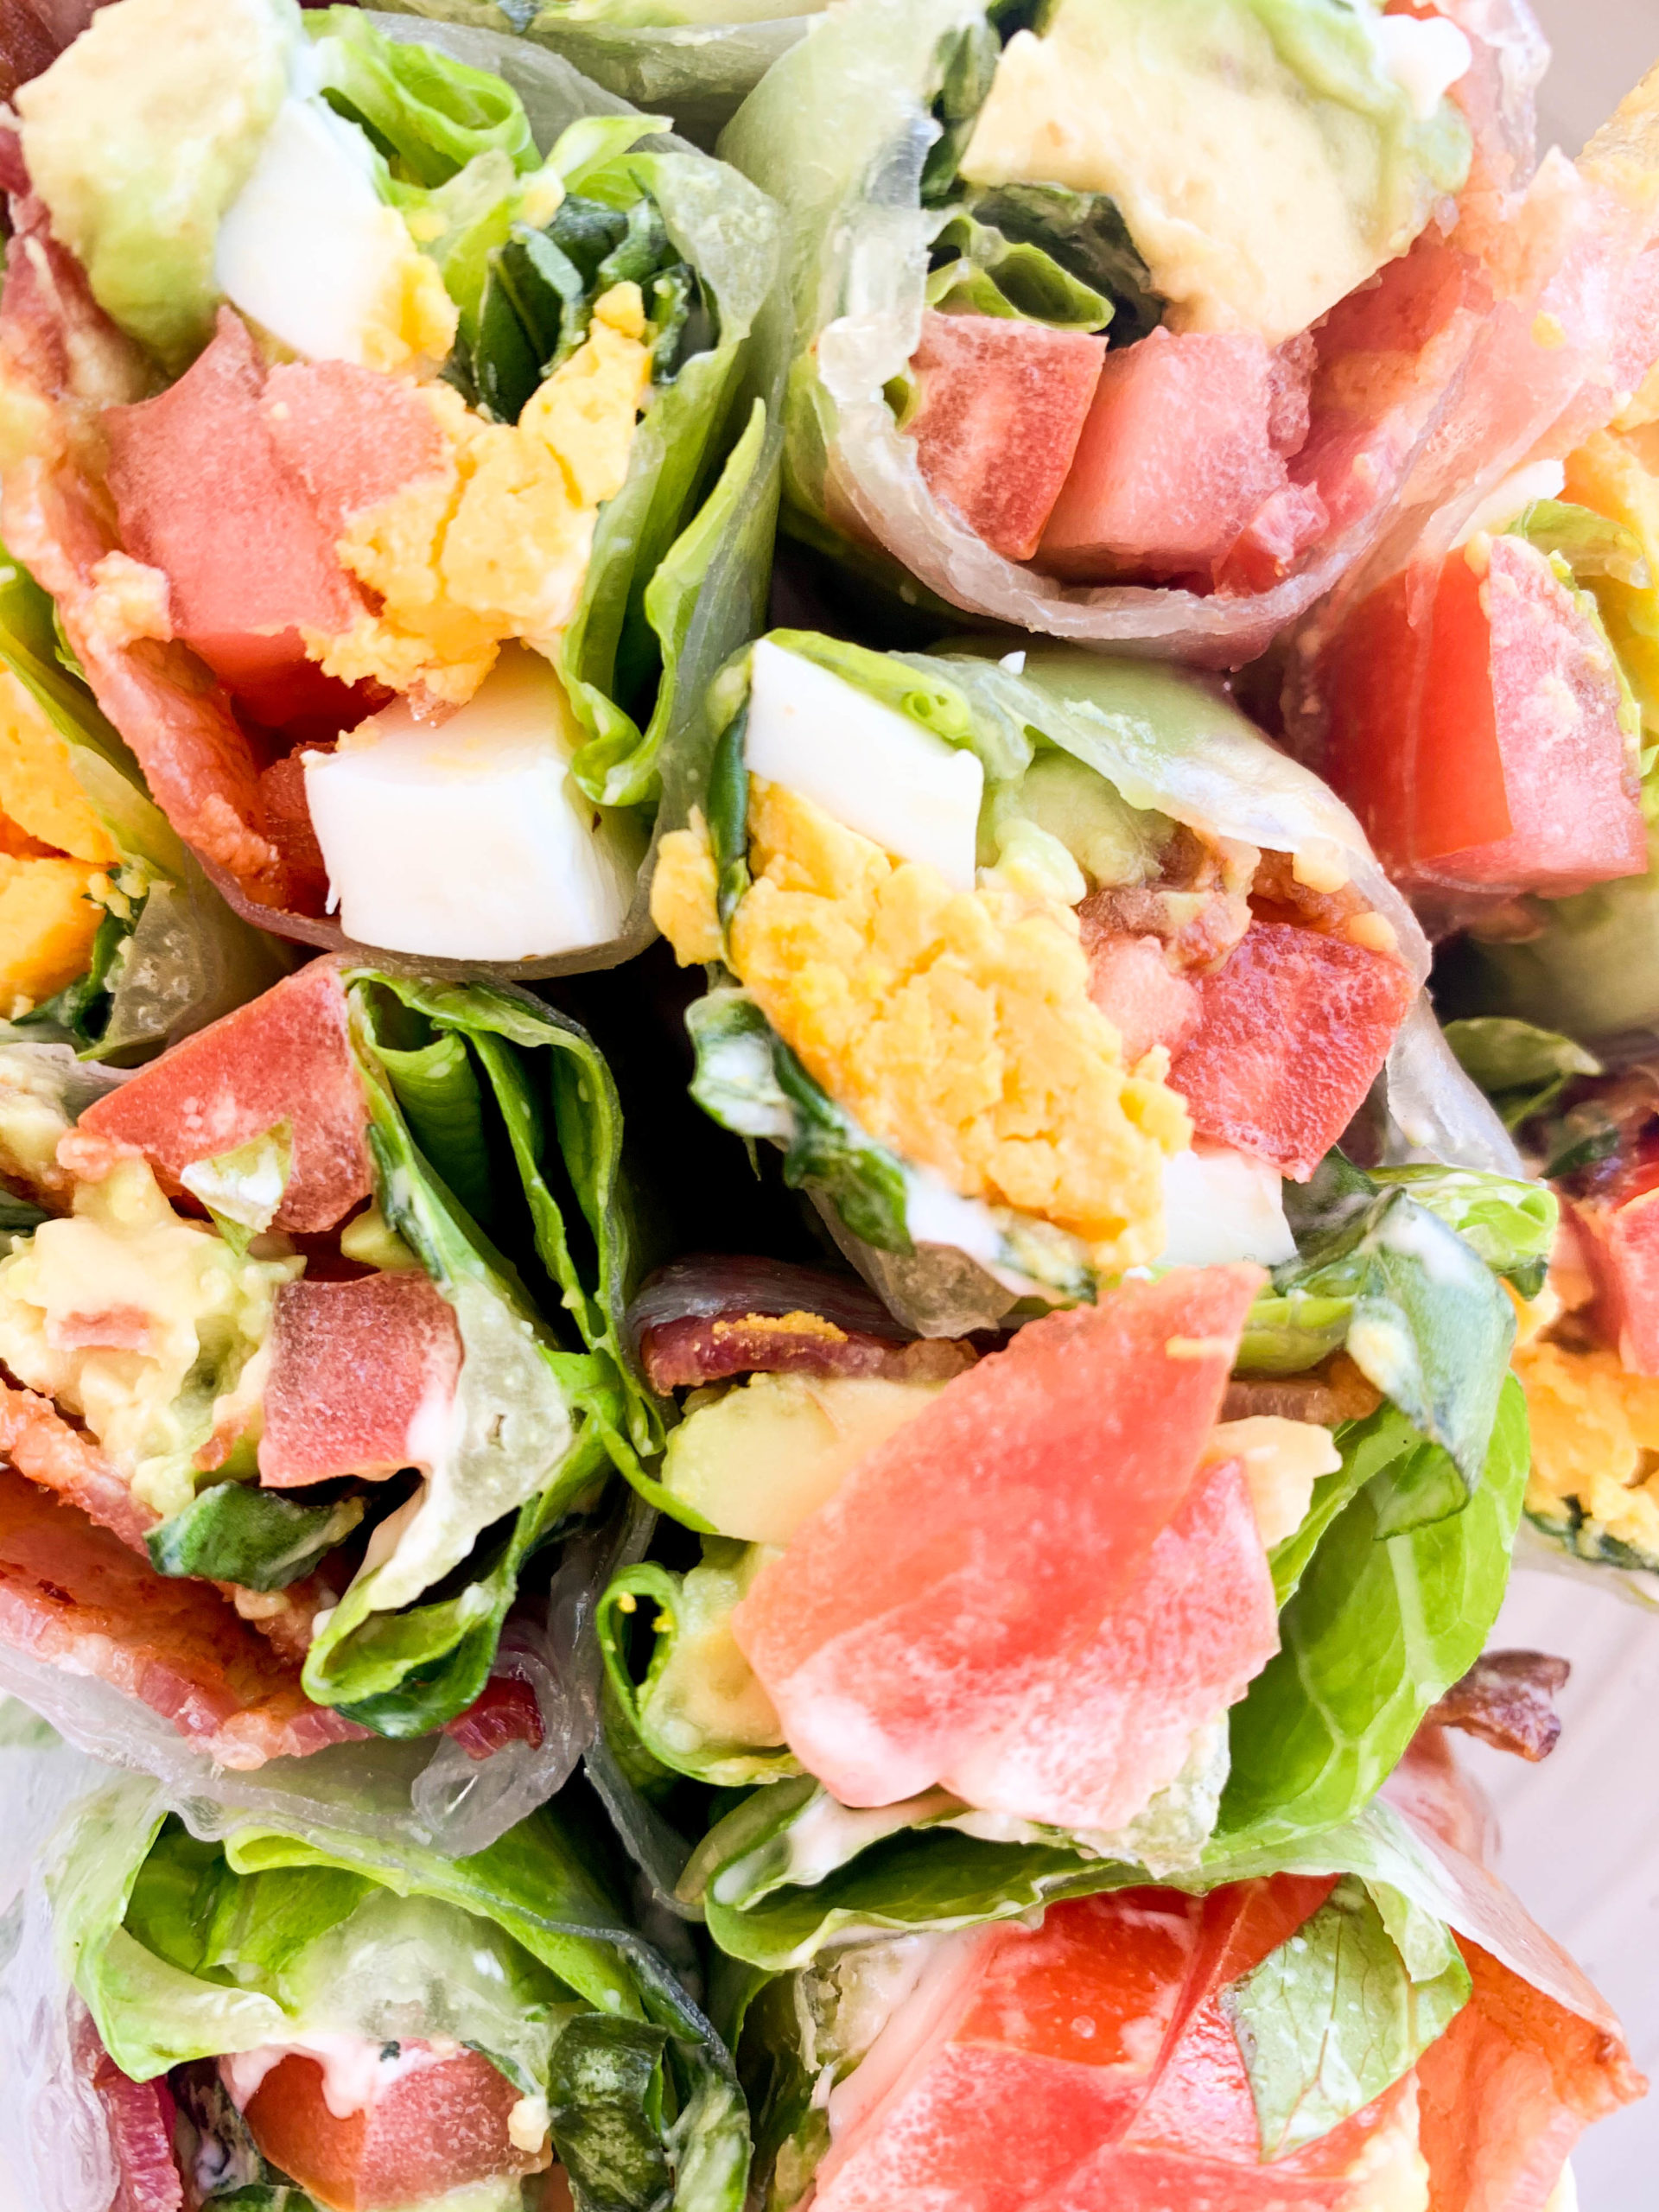 BLT Summer Rolls with Avocado and Egg